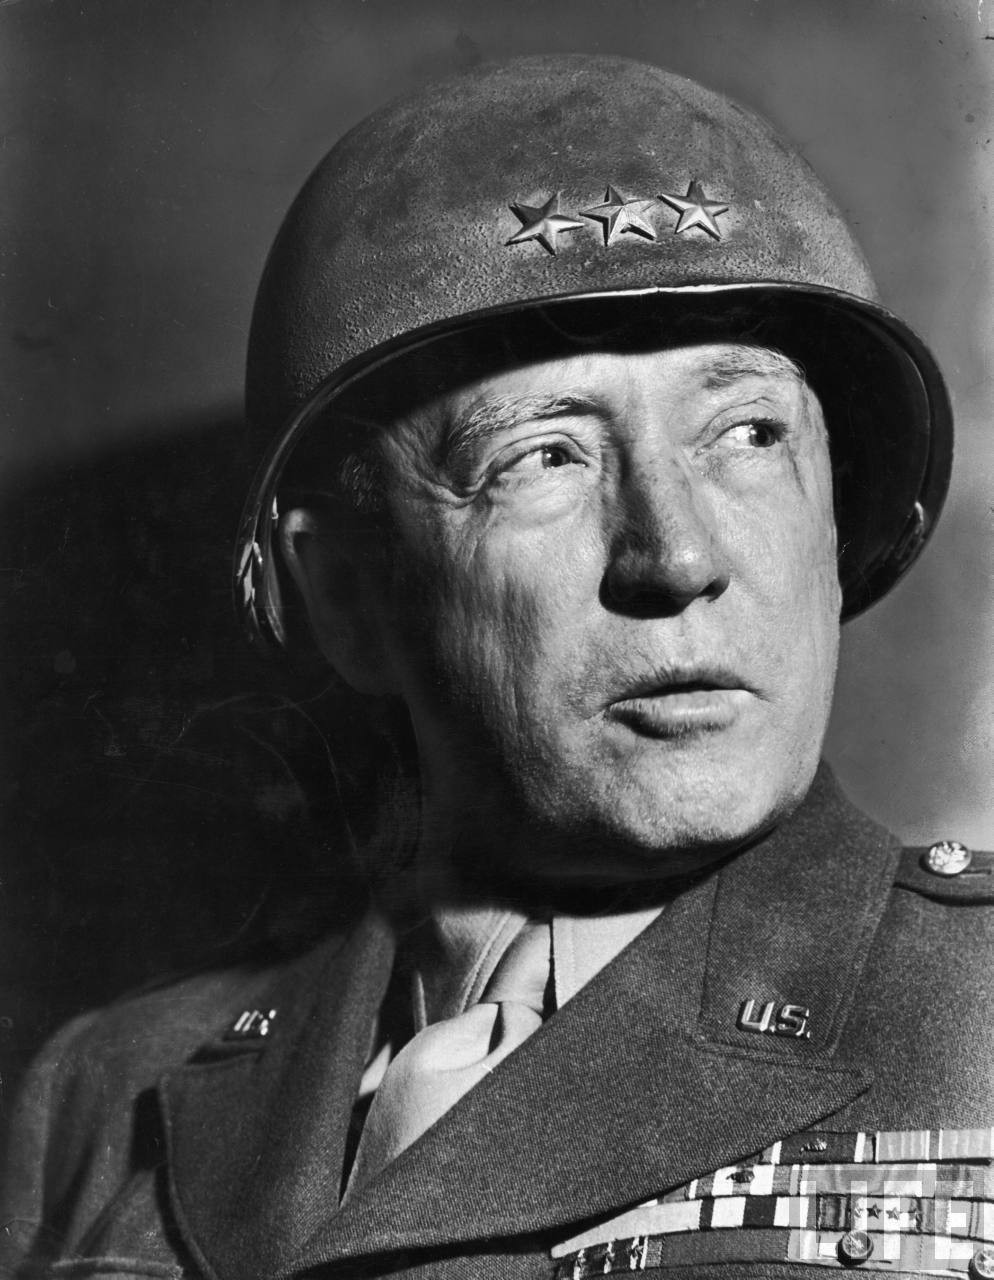 General George S Patton a famous figure from US Military History